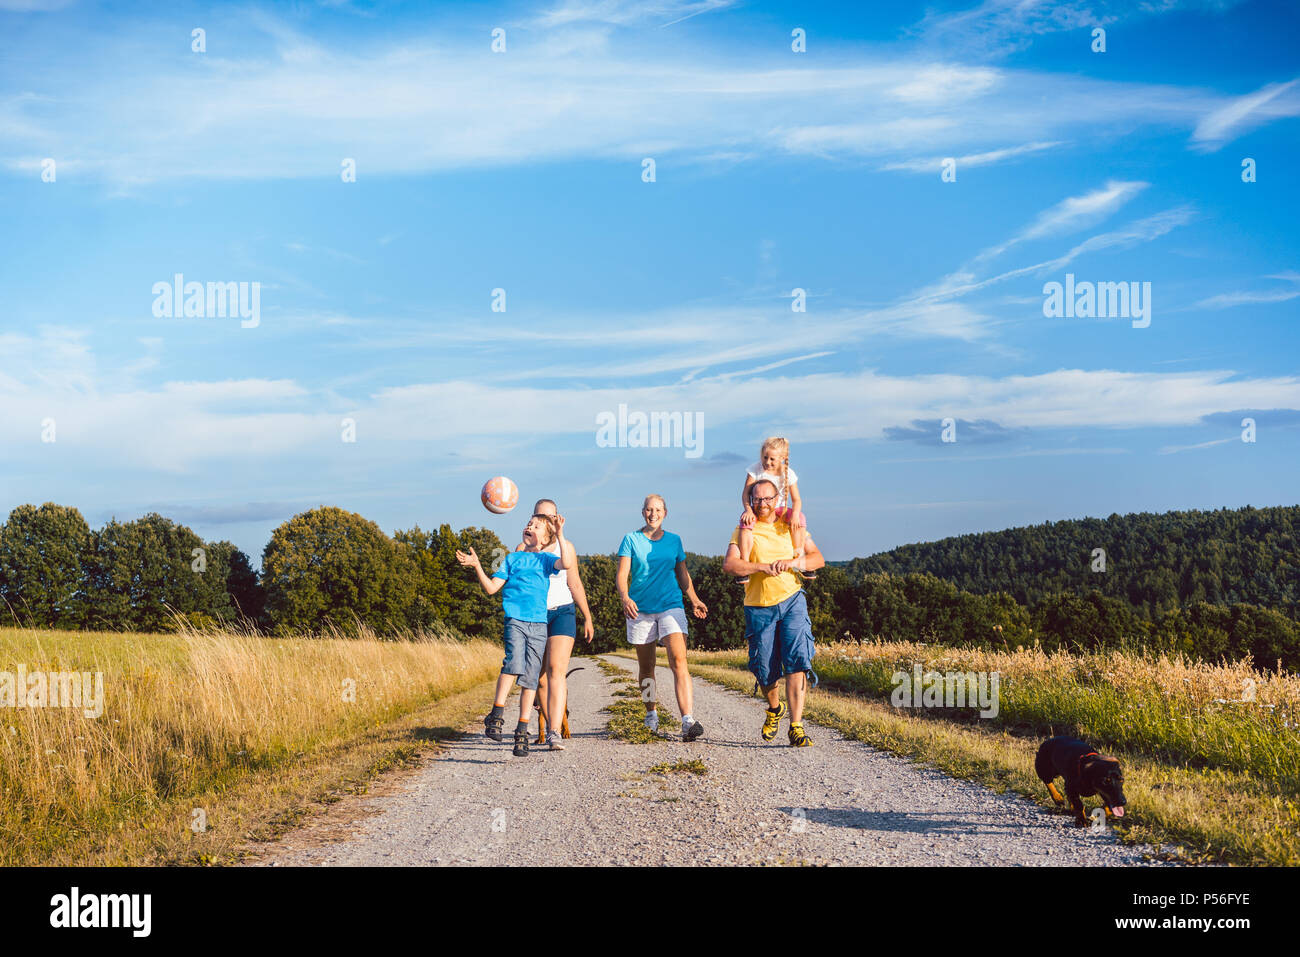 Family walking their dog on a dirt path - Stock Image